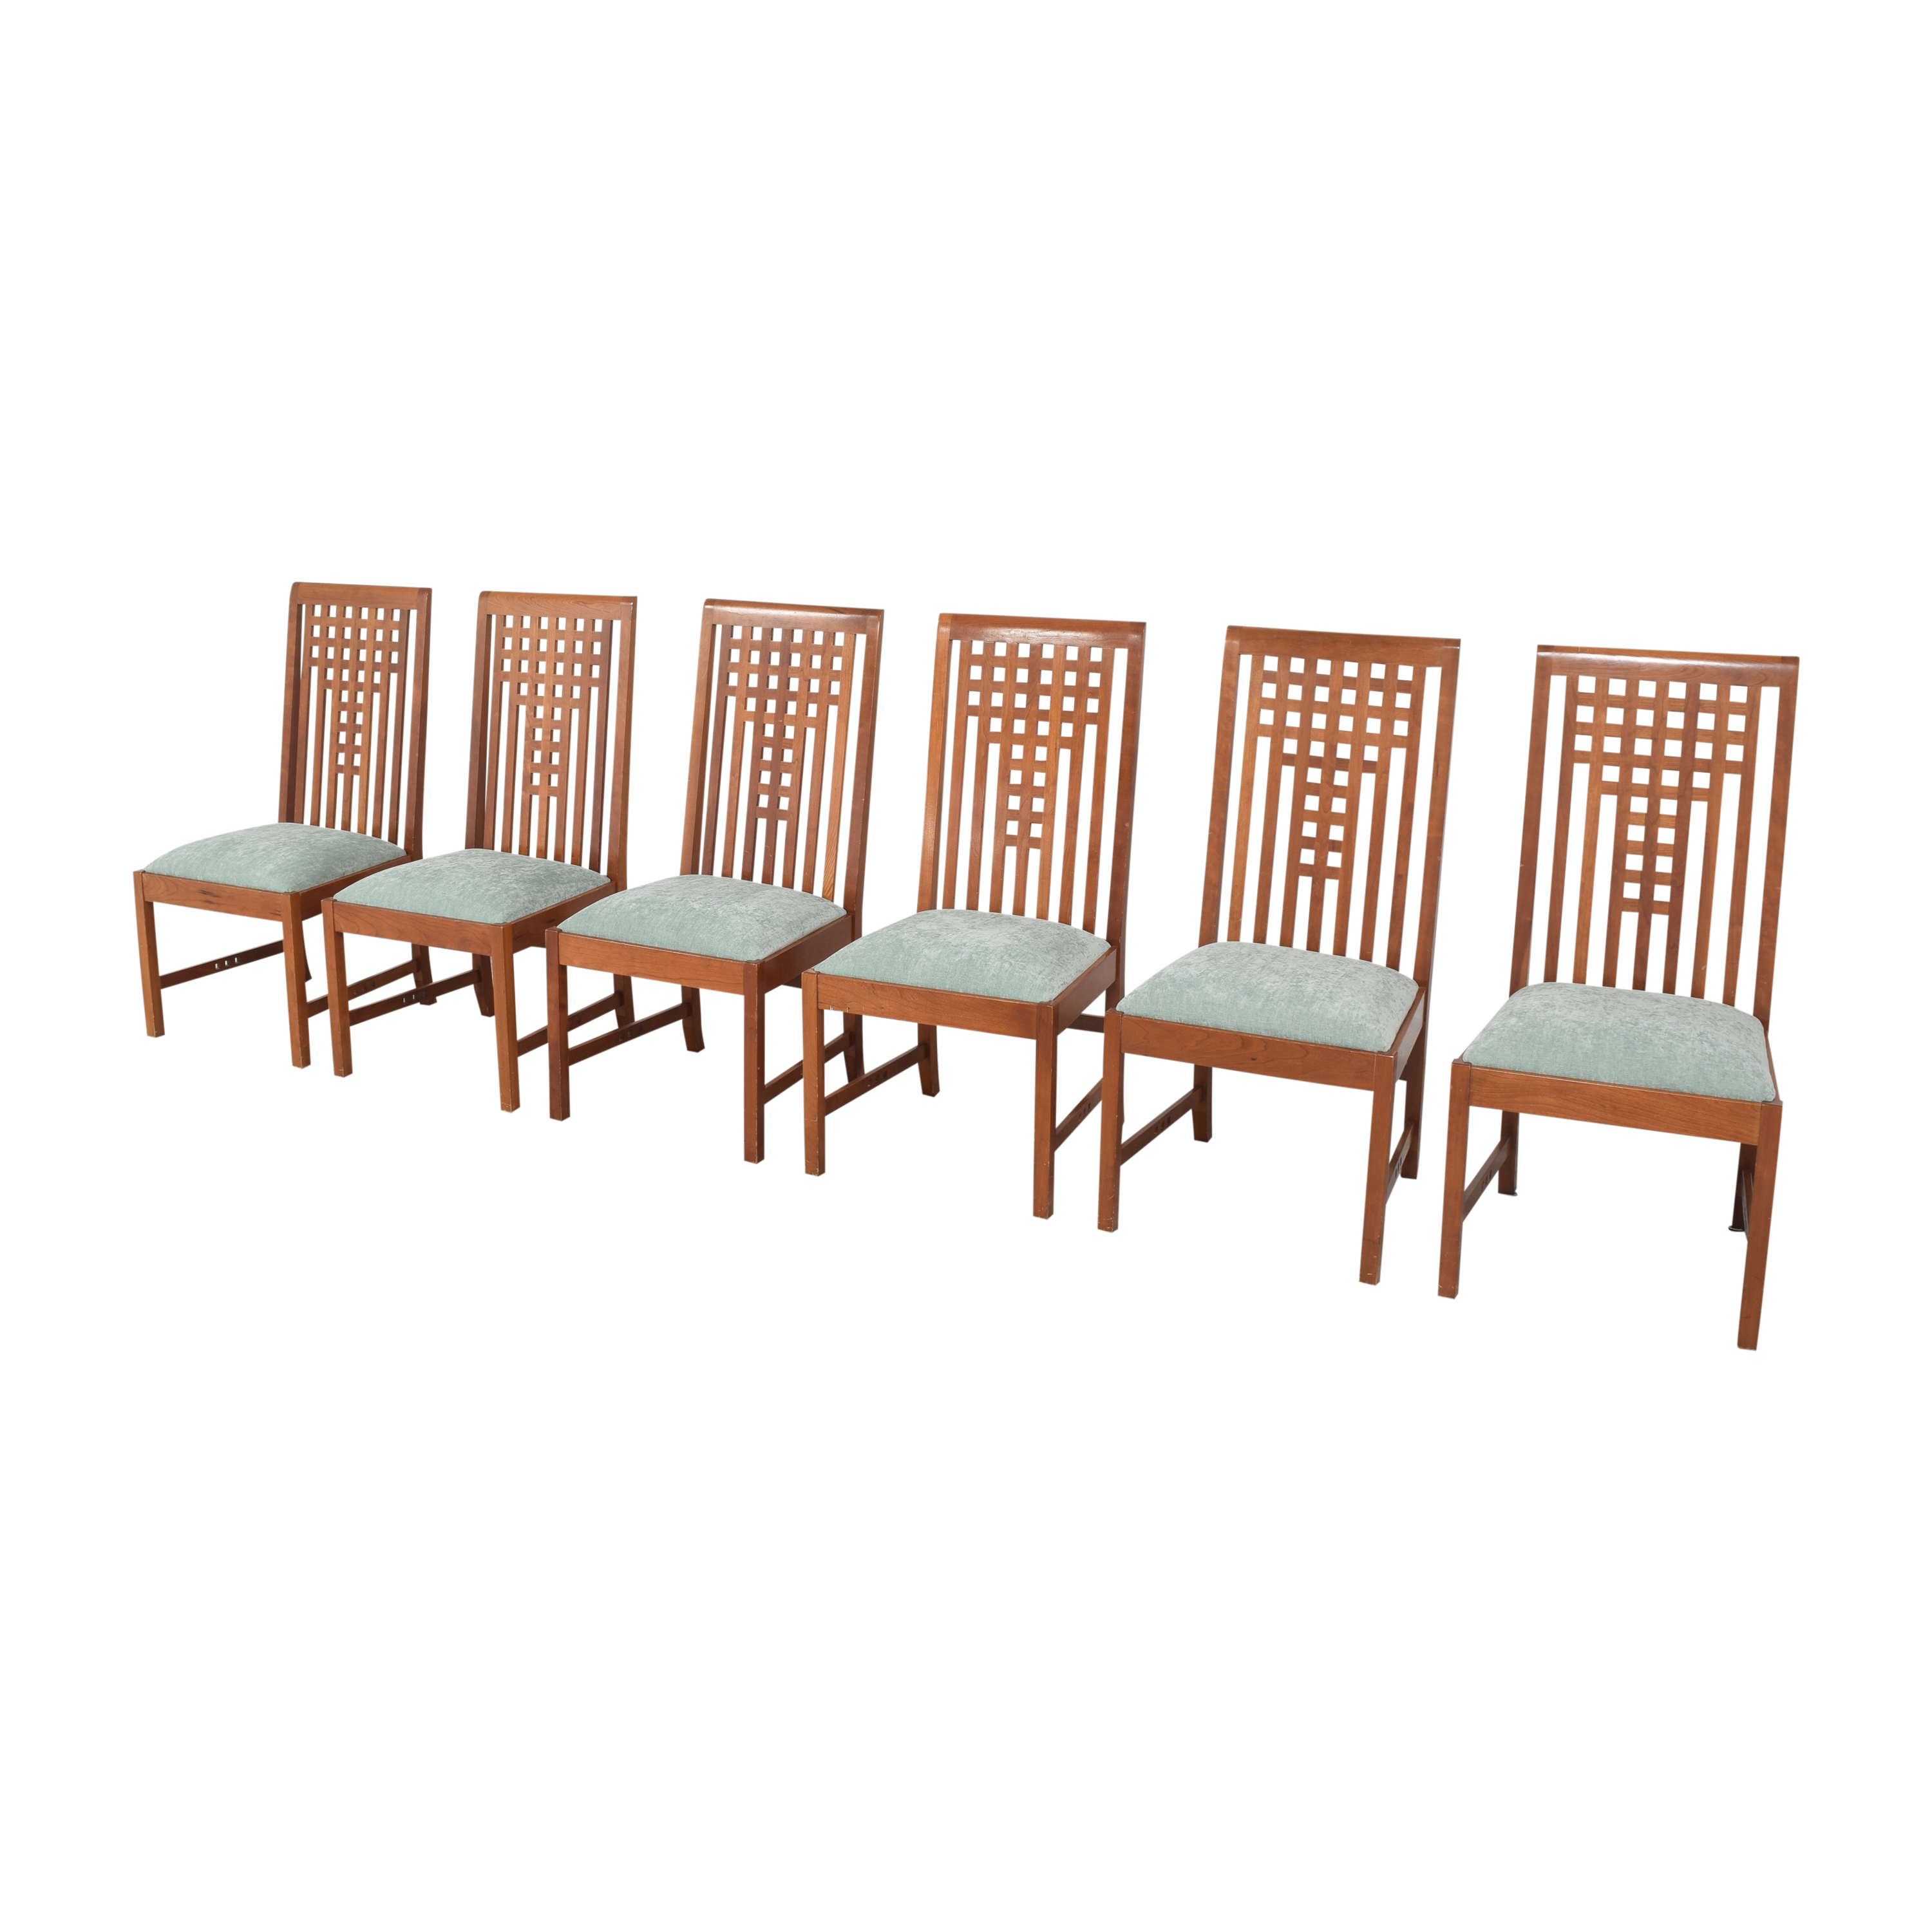 Stickley Furniture Stickley Furniture 21st Century Lattice Dining Side Chairs coupon